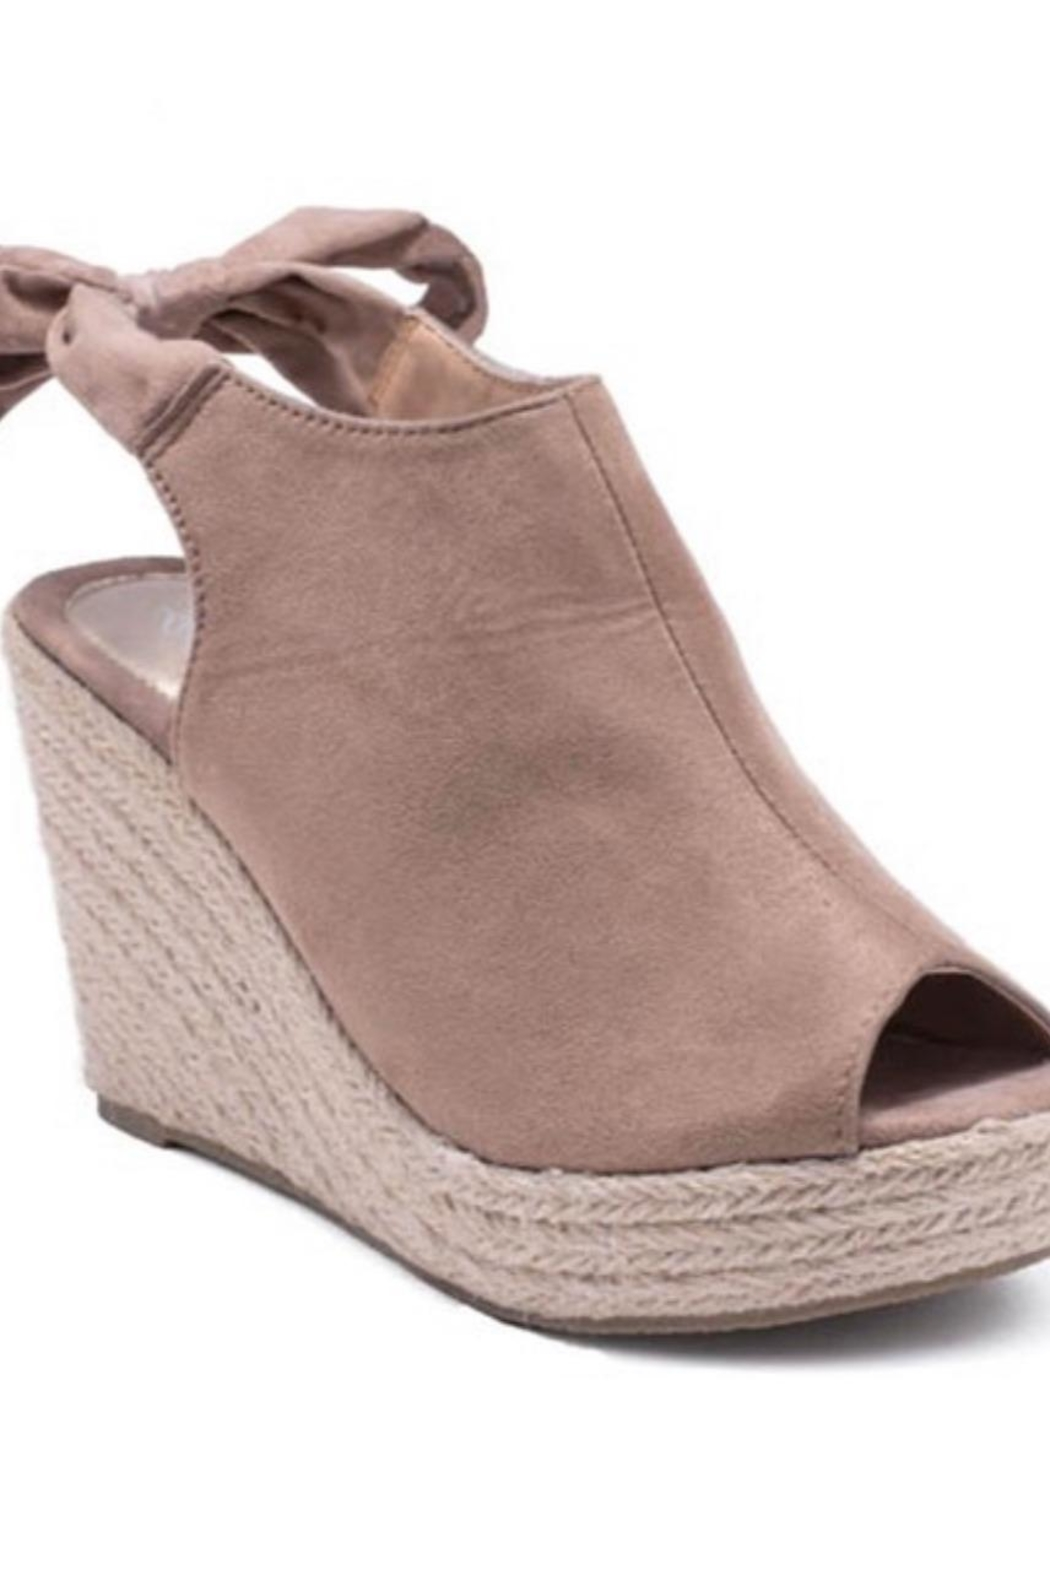 3B Shoes Taupe Wedge Sandals - Main Image